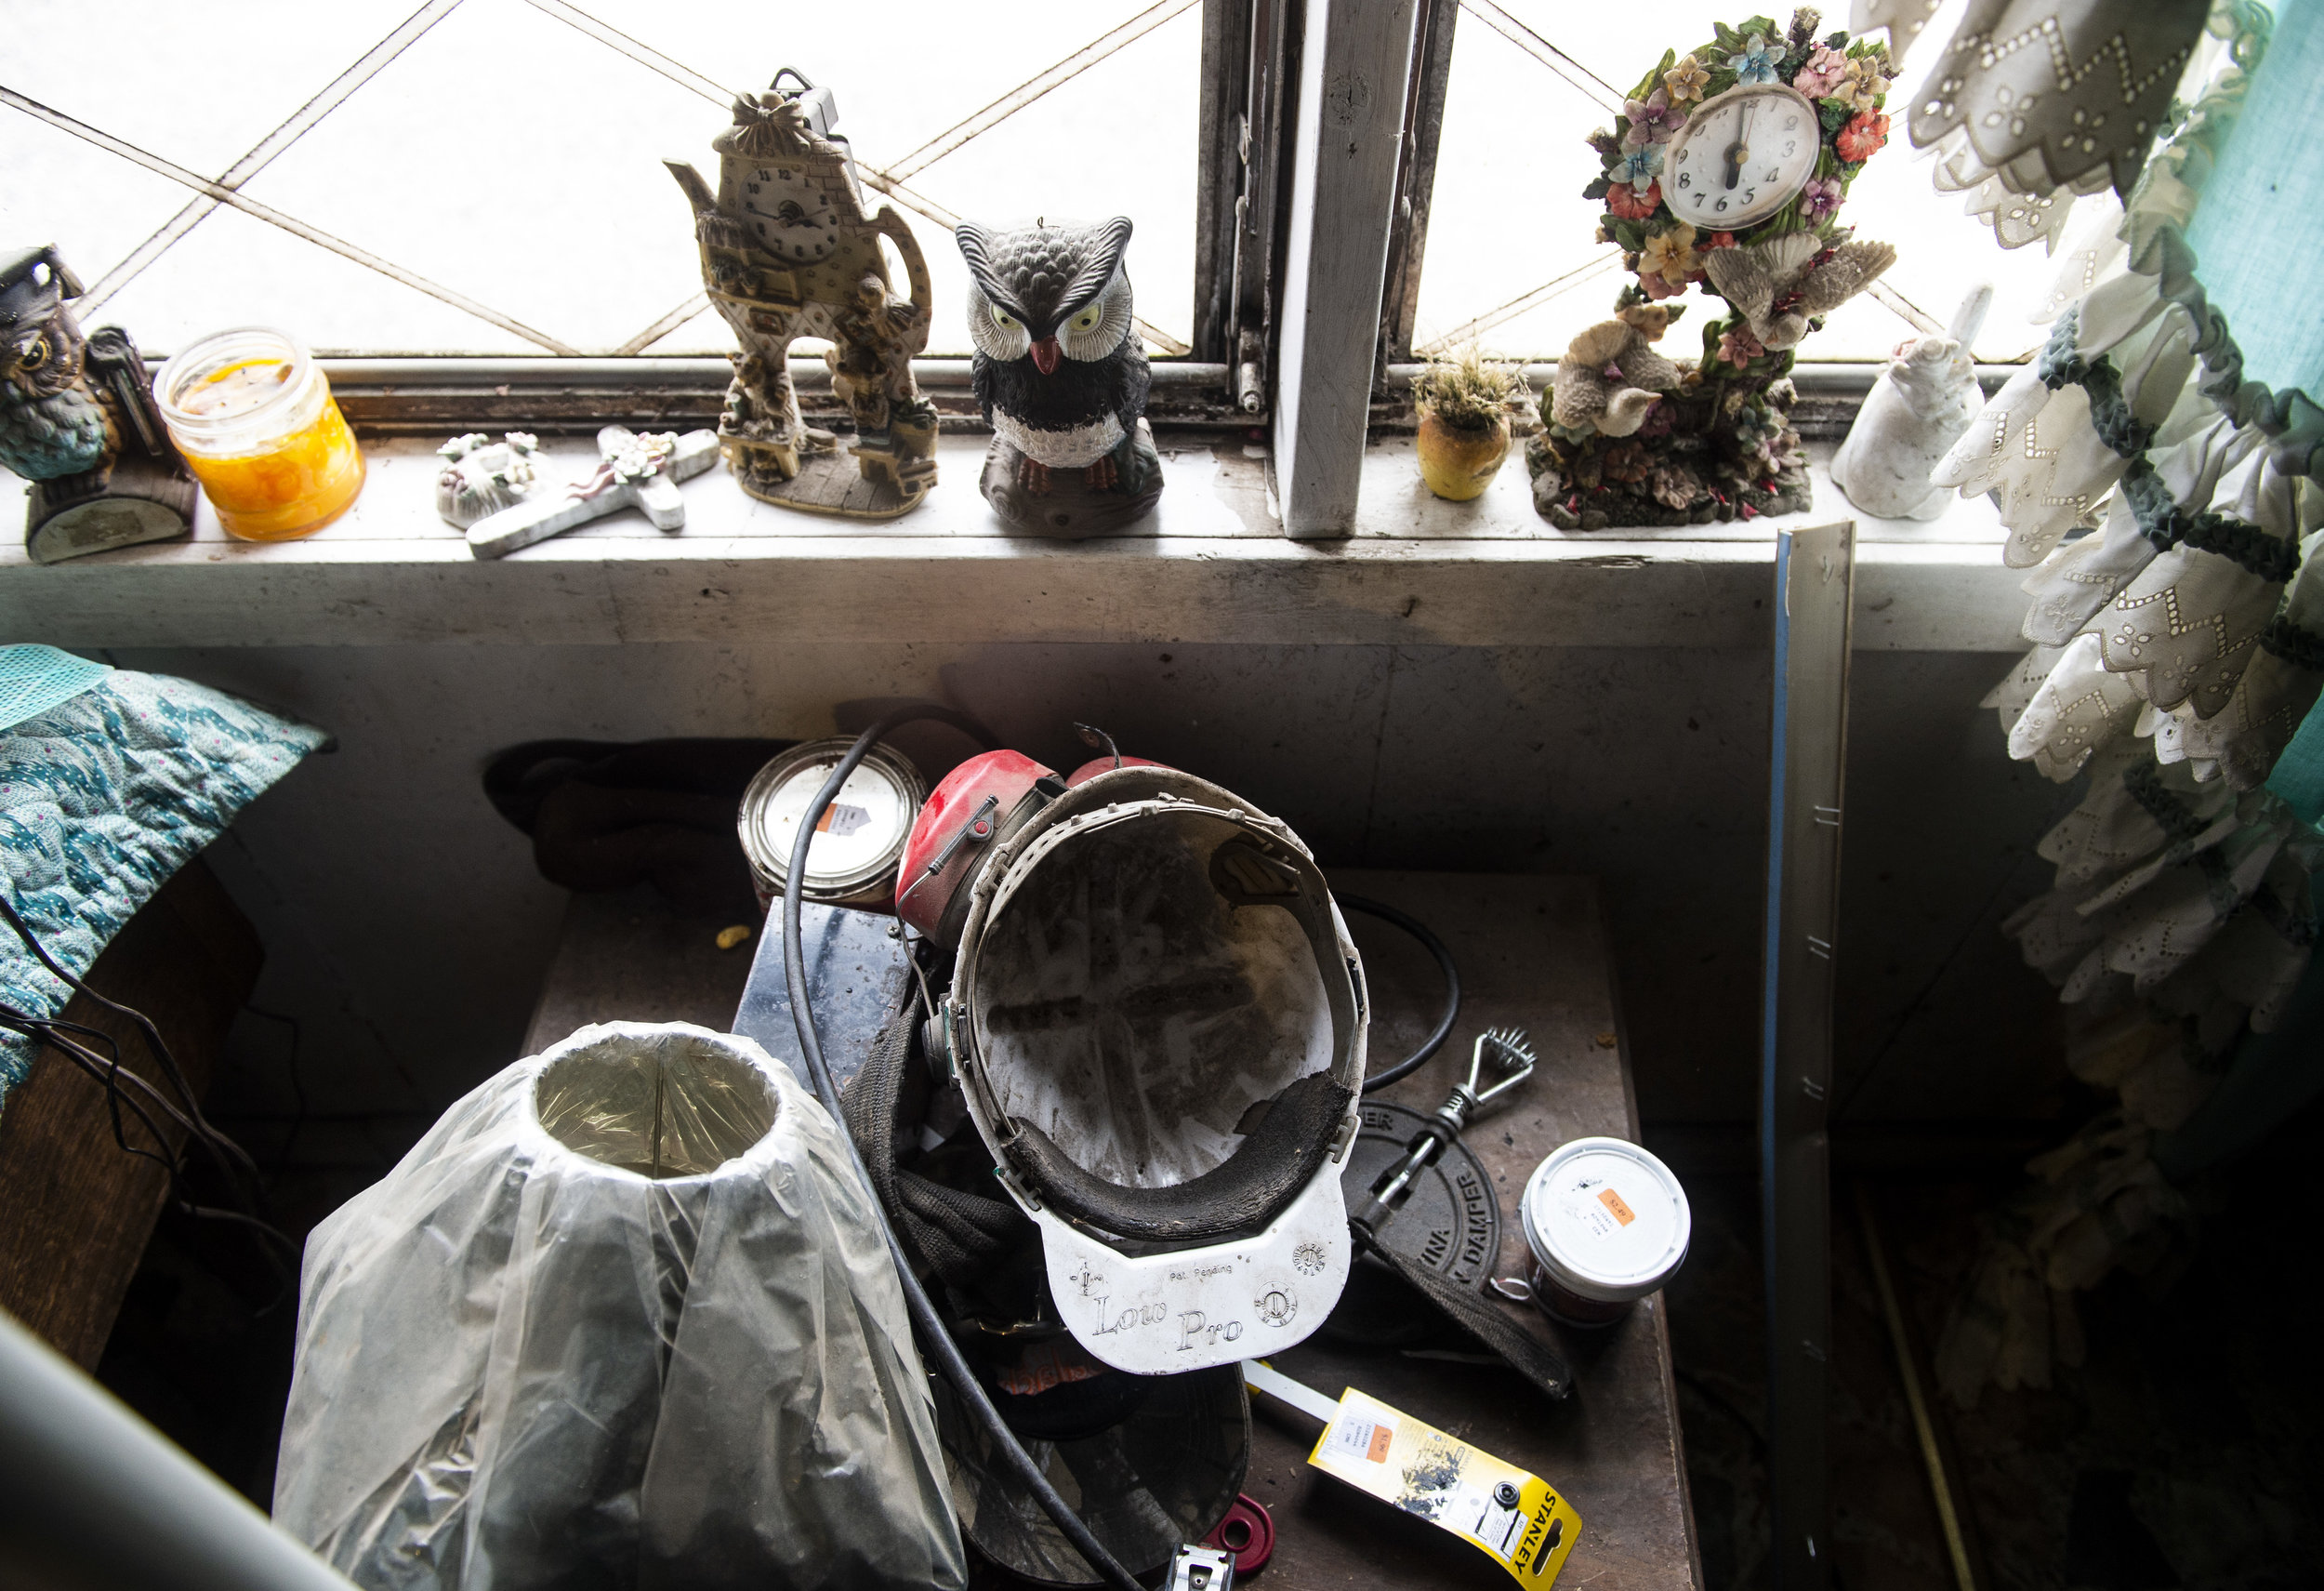 The coal miners helmet that Harold Dotson wore when he worked in the mines sits on a table near the front window of his home in Paw Paw, Kentucky on Thursday, January 17.